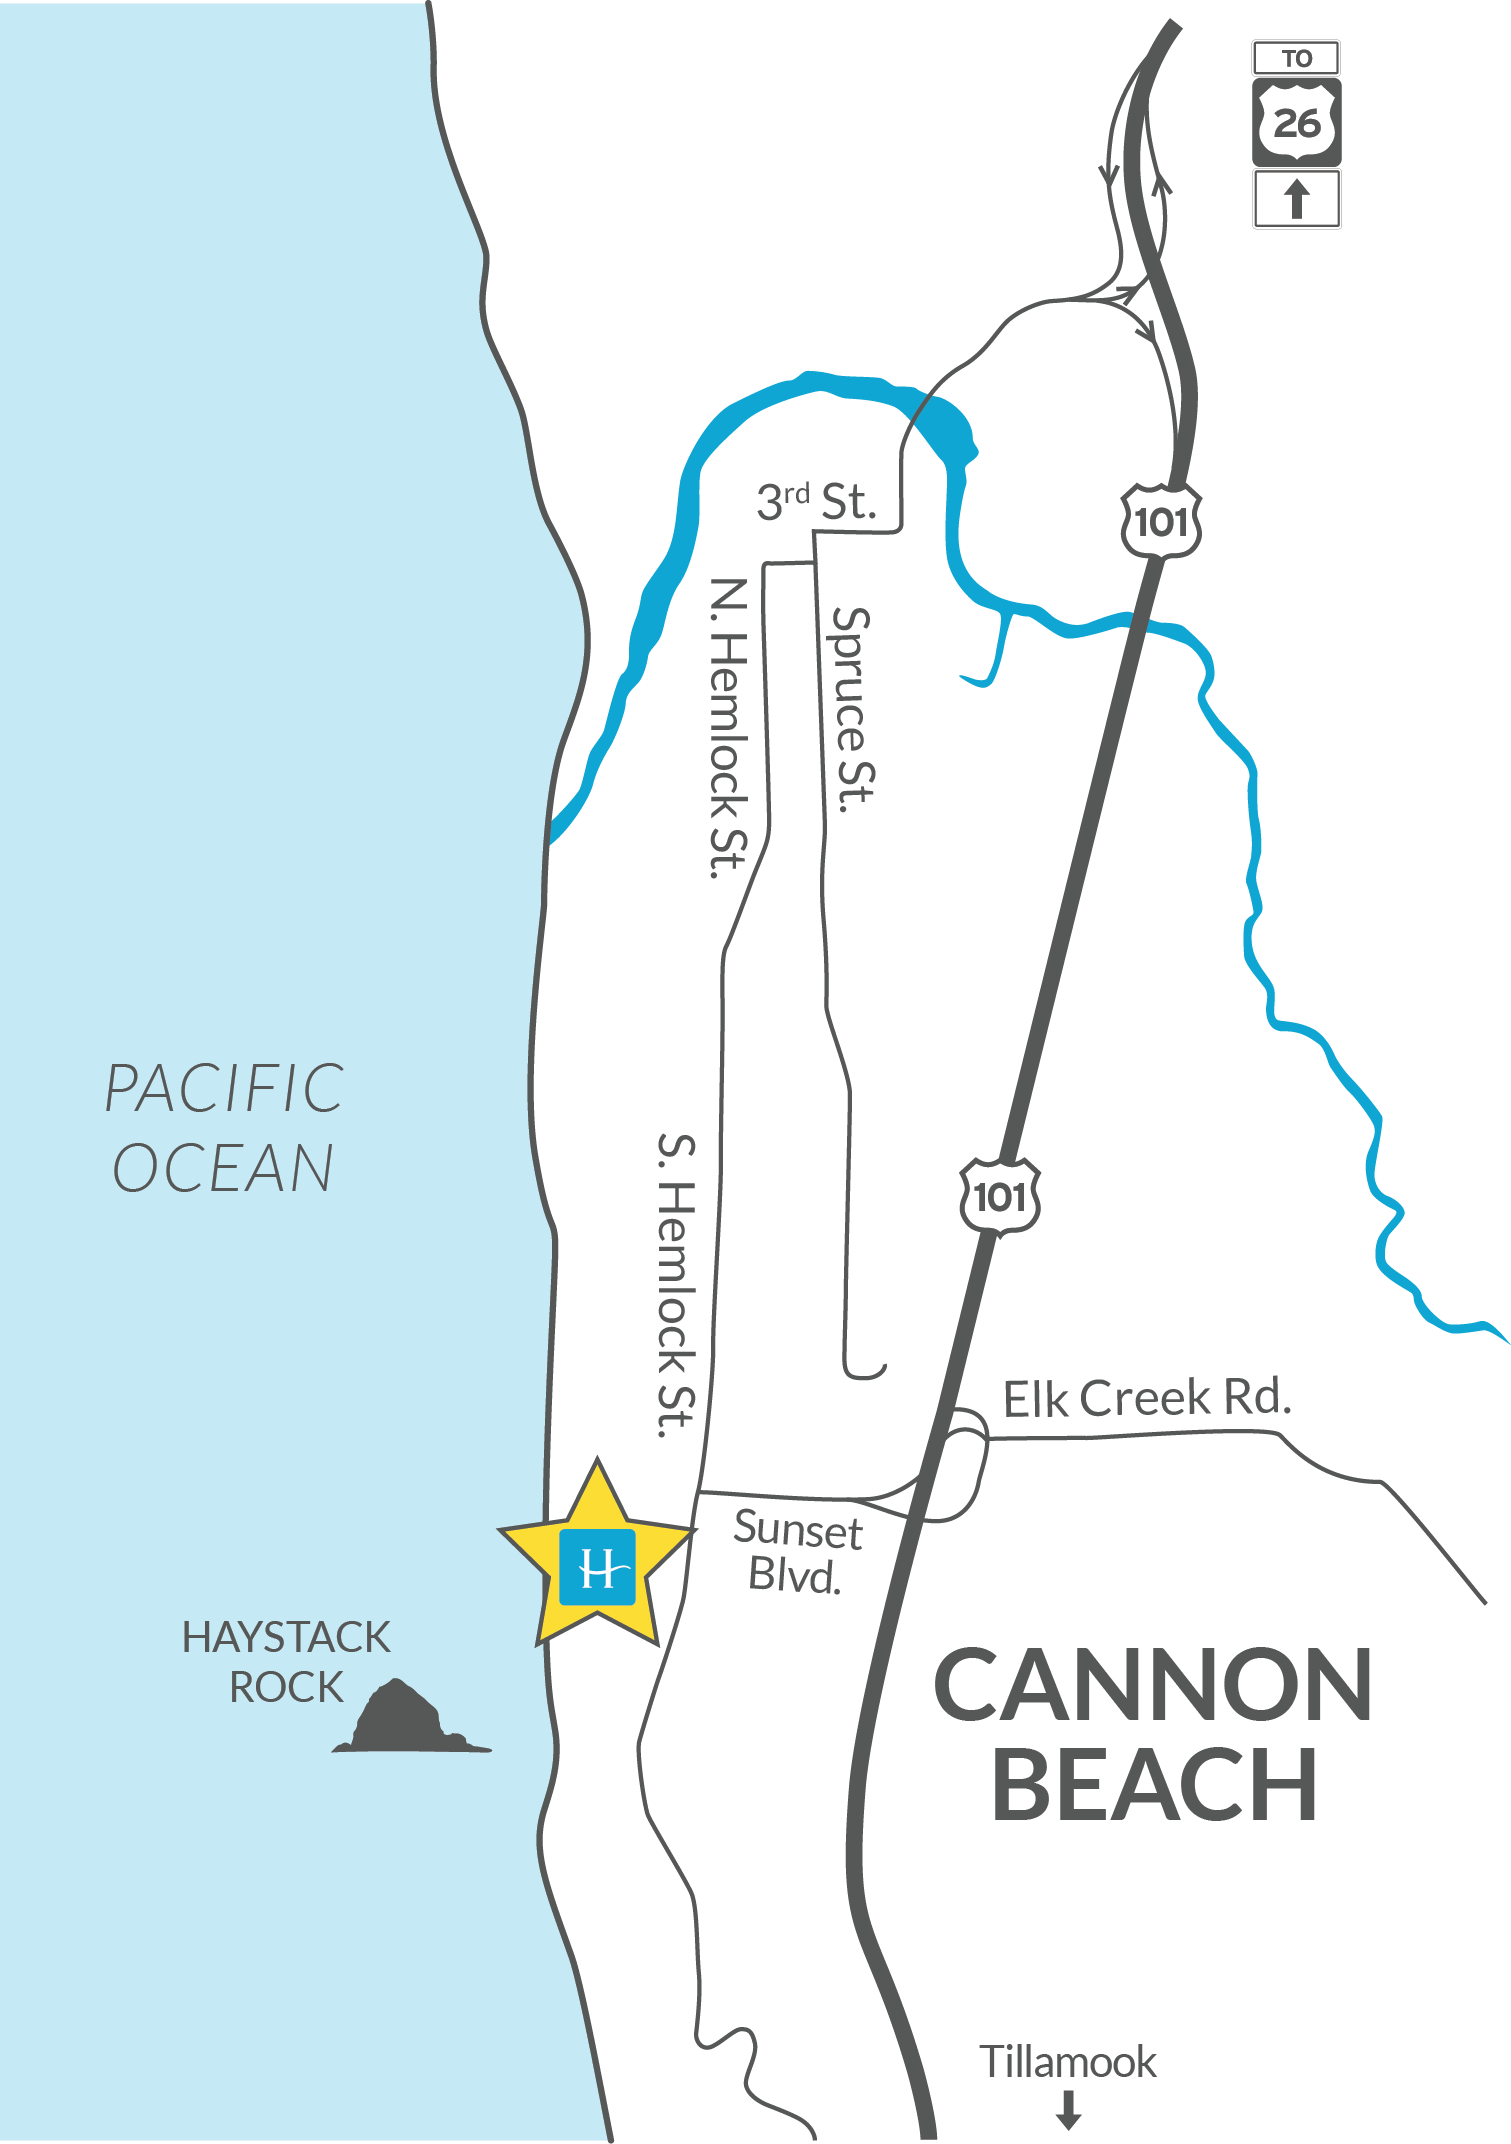 Hallmark Resort & Spa Cannon Beach Map